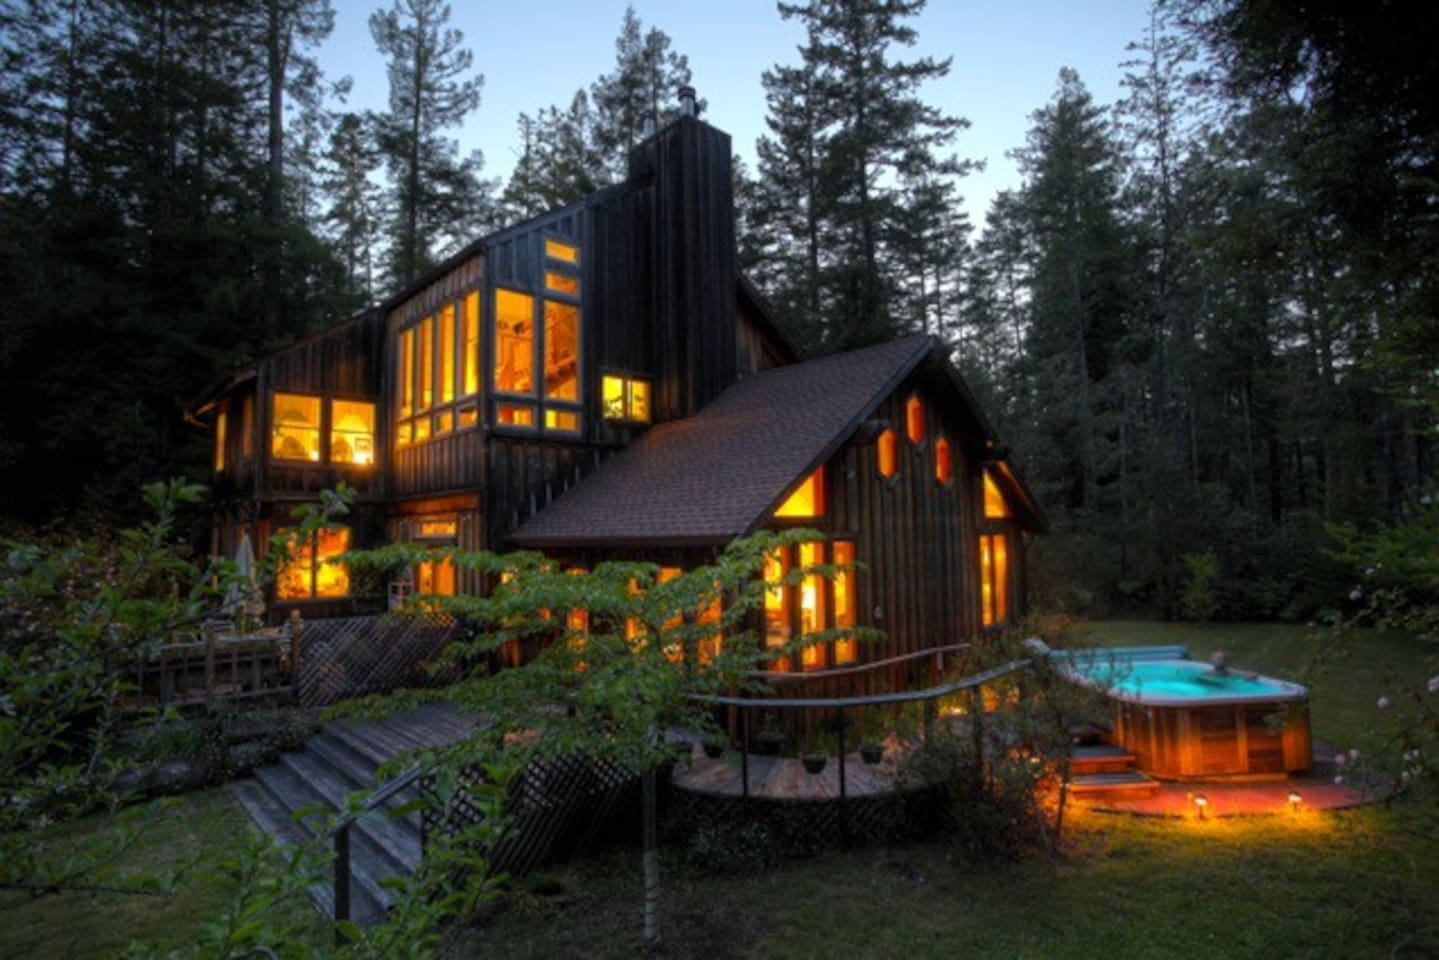 The House and Hot Tub  At Night. Your rooms are up there on the second floor of the house.